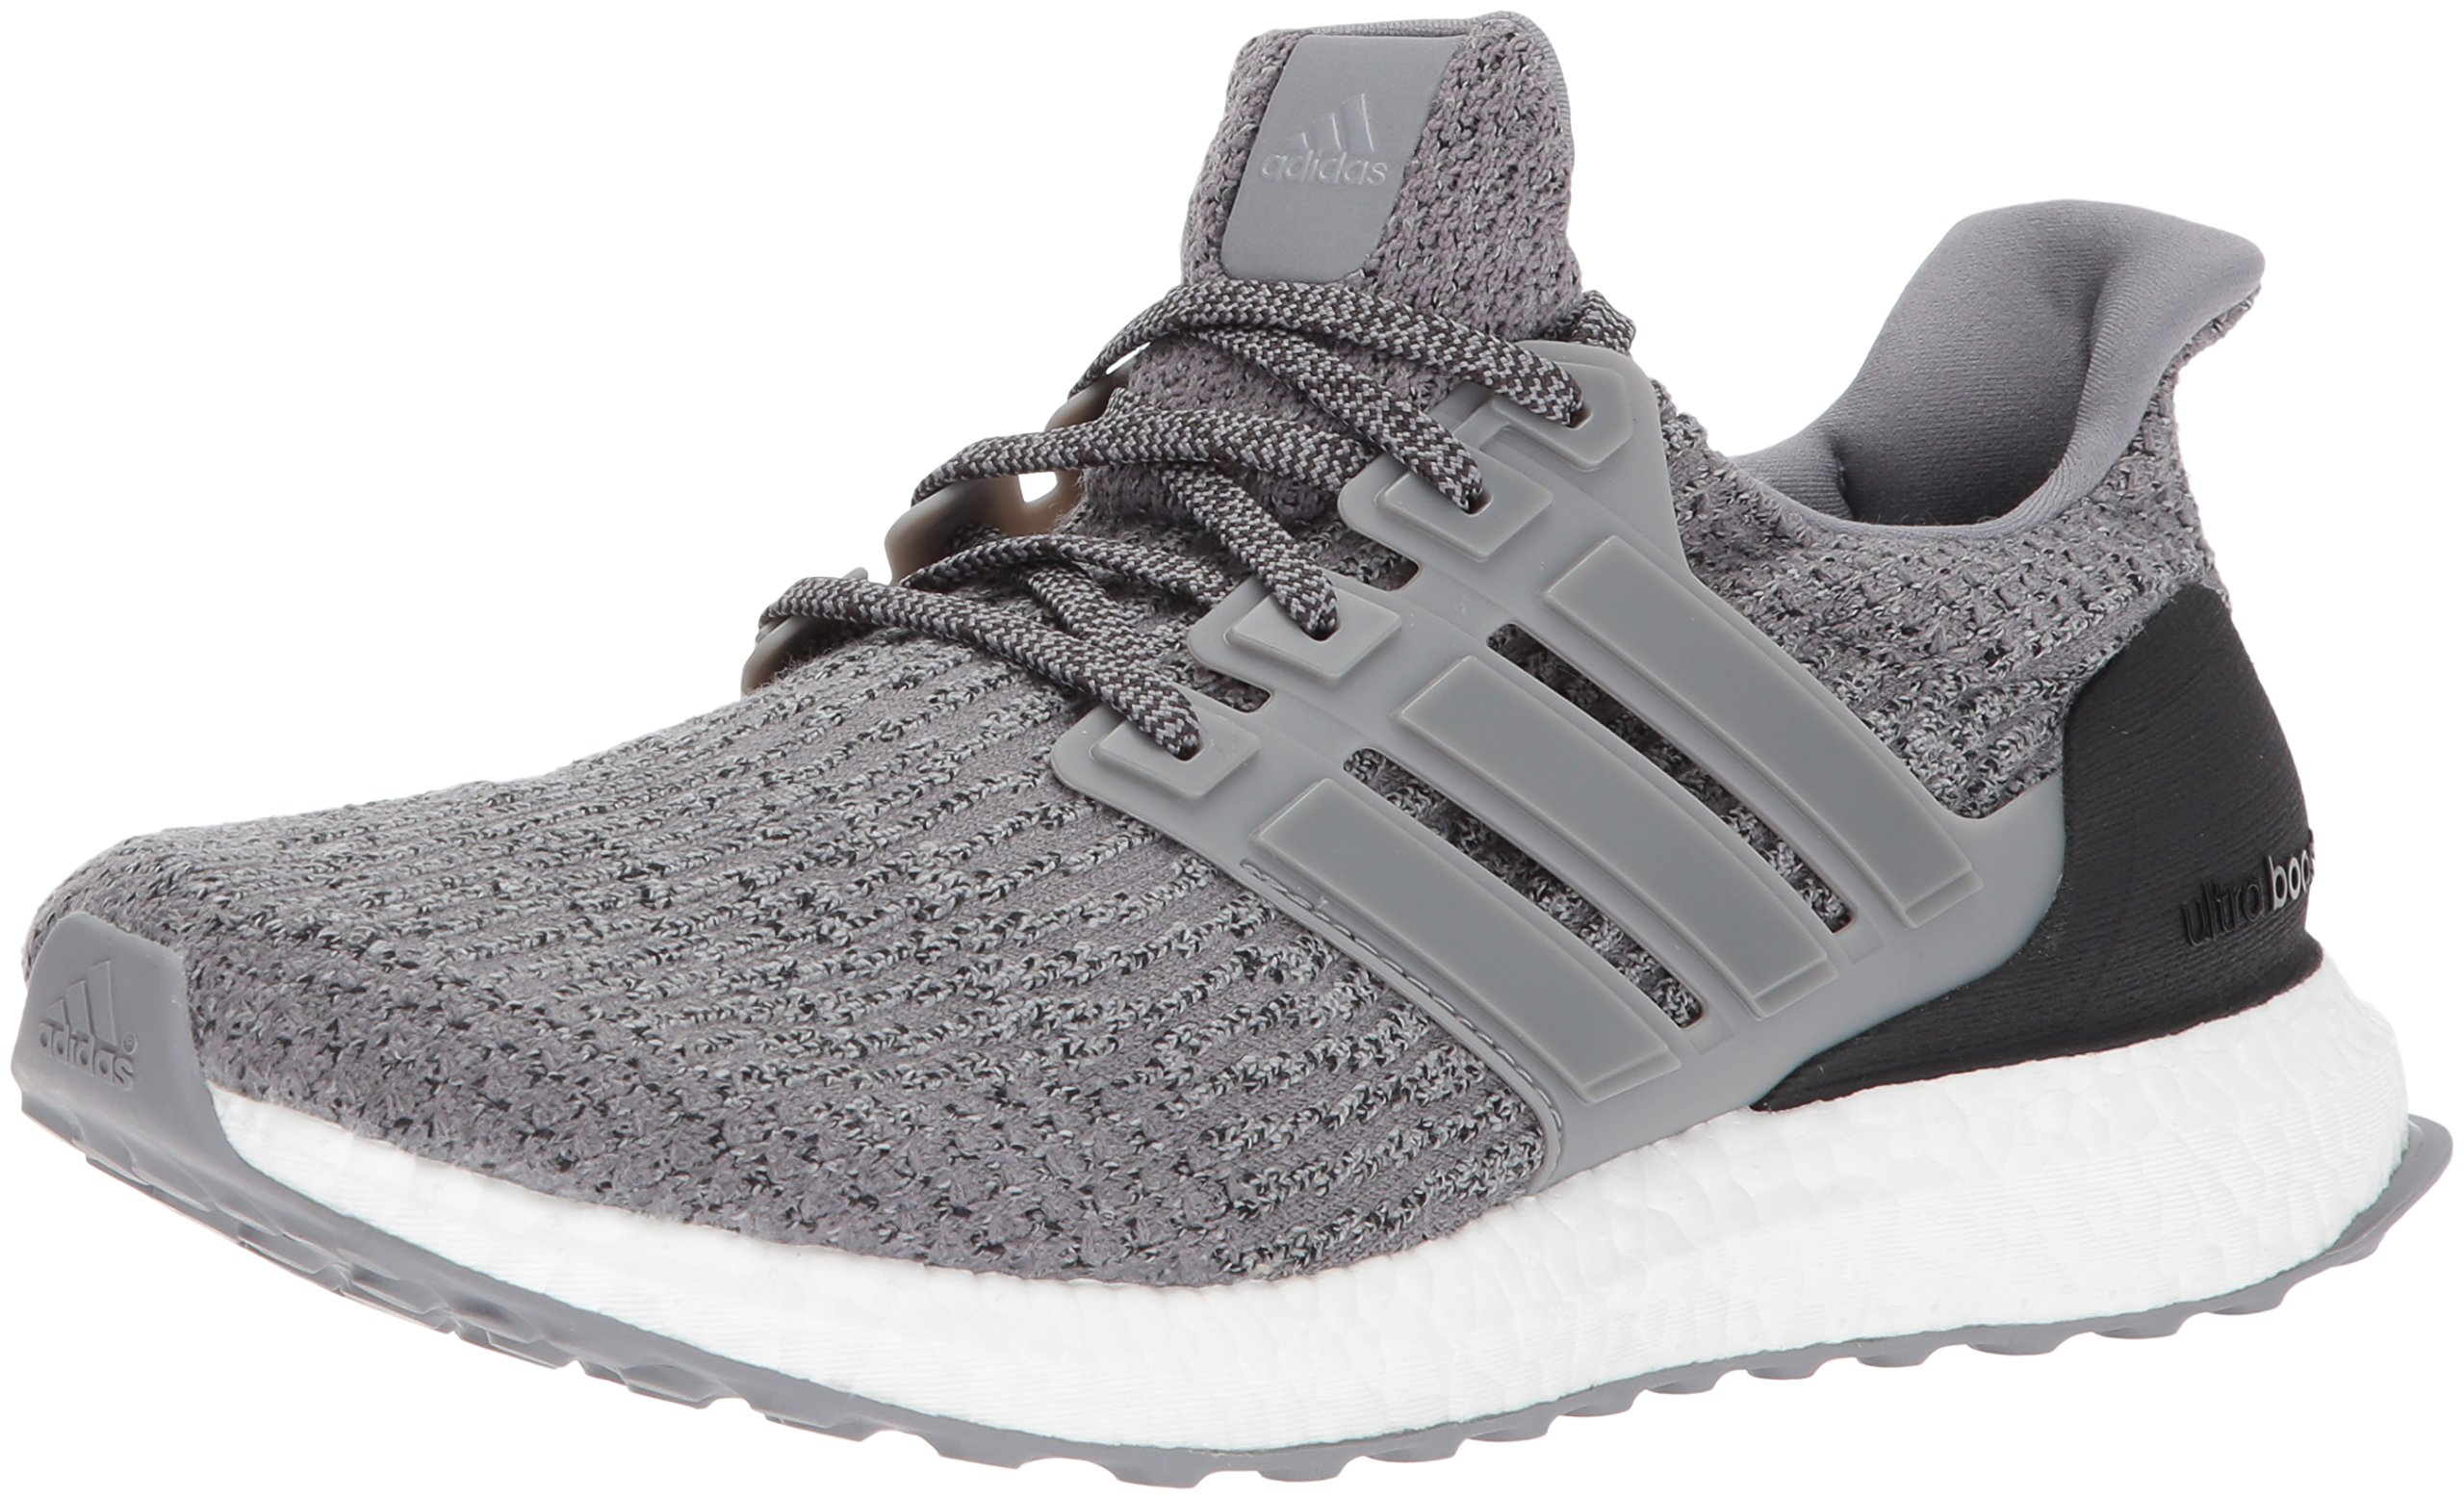 Galleon Adidas Men's Ultraboost Running Shoe, ThreeGrey